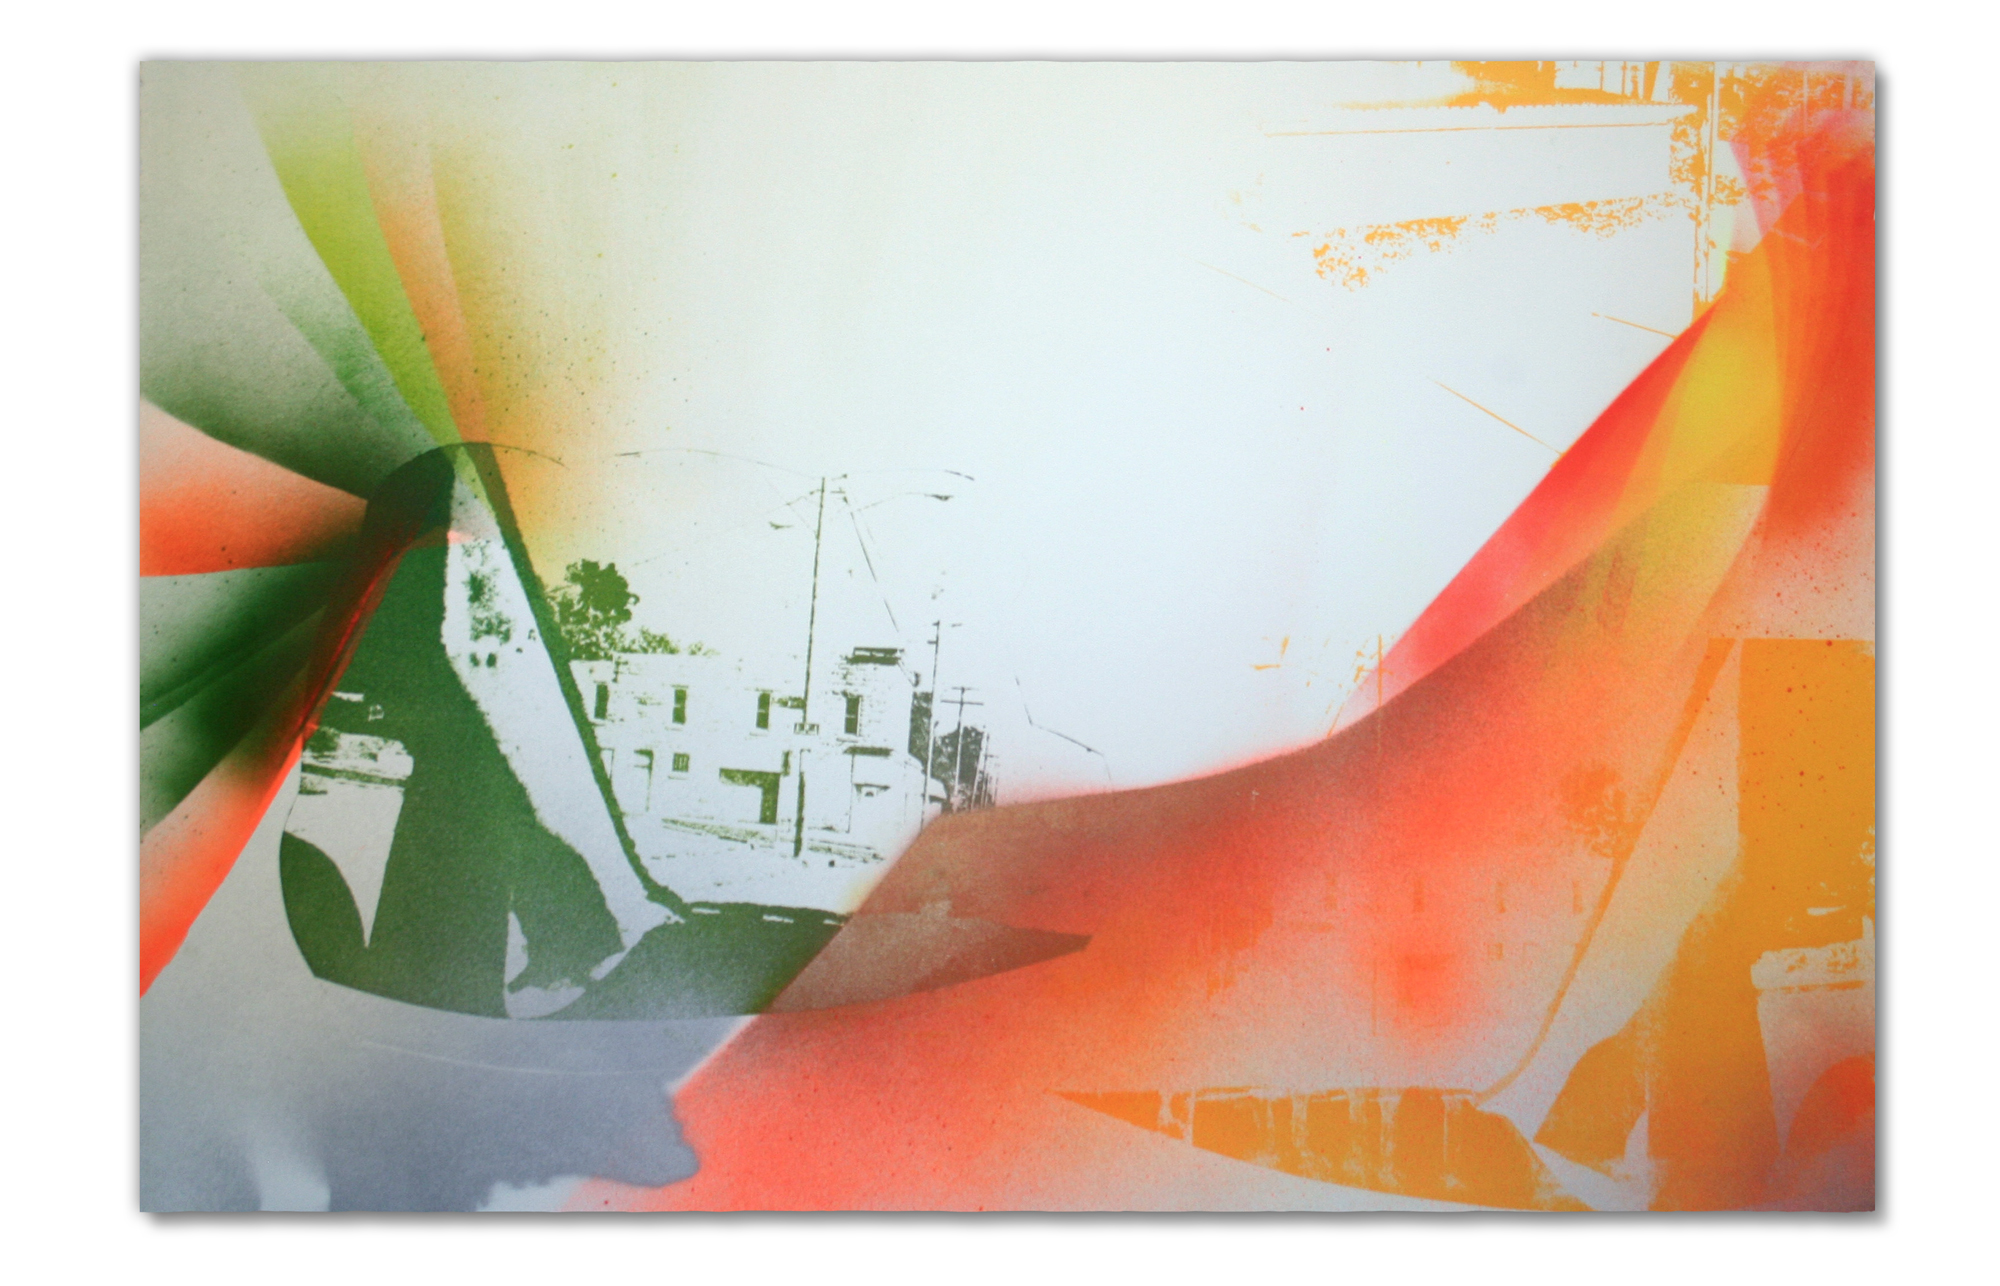 East Peoria (looks like CLE with Prairie light) , 2015. Photo lithography, screenprint, spray paint & pencil on Light Blue Stonehenge, 15 in H x 22.5 in W